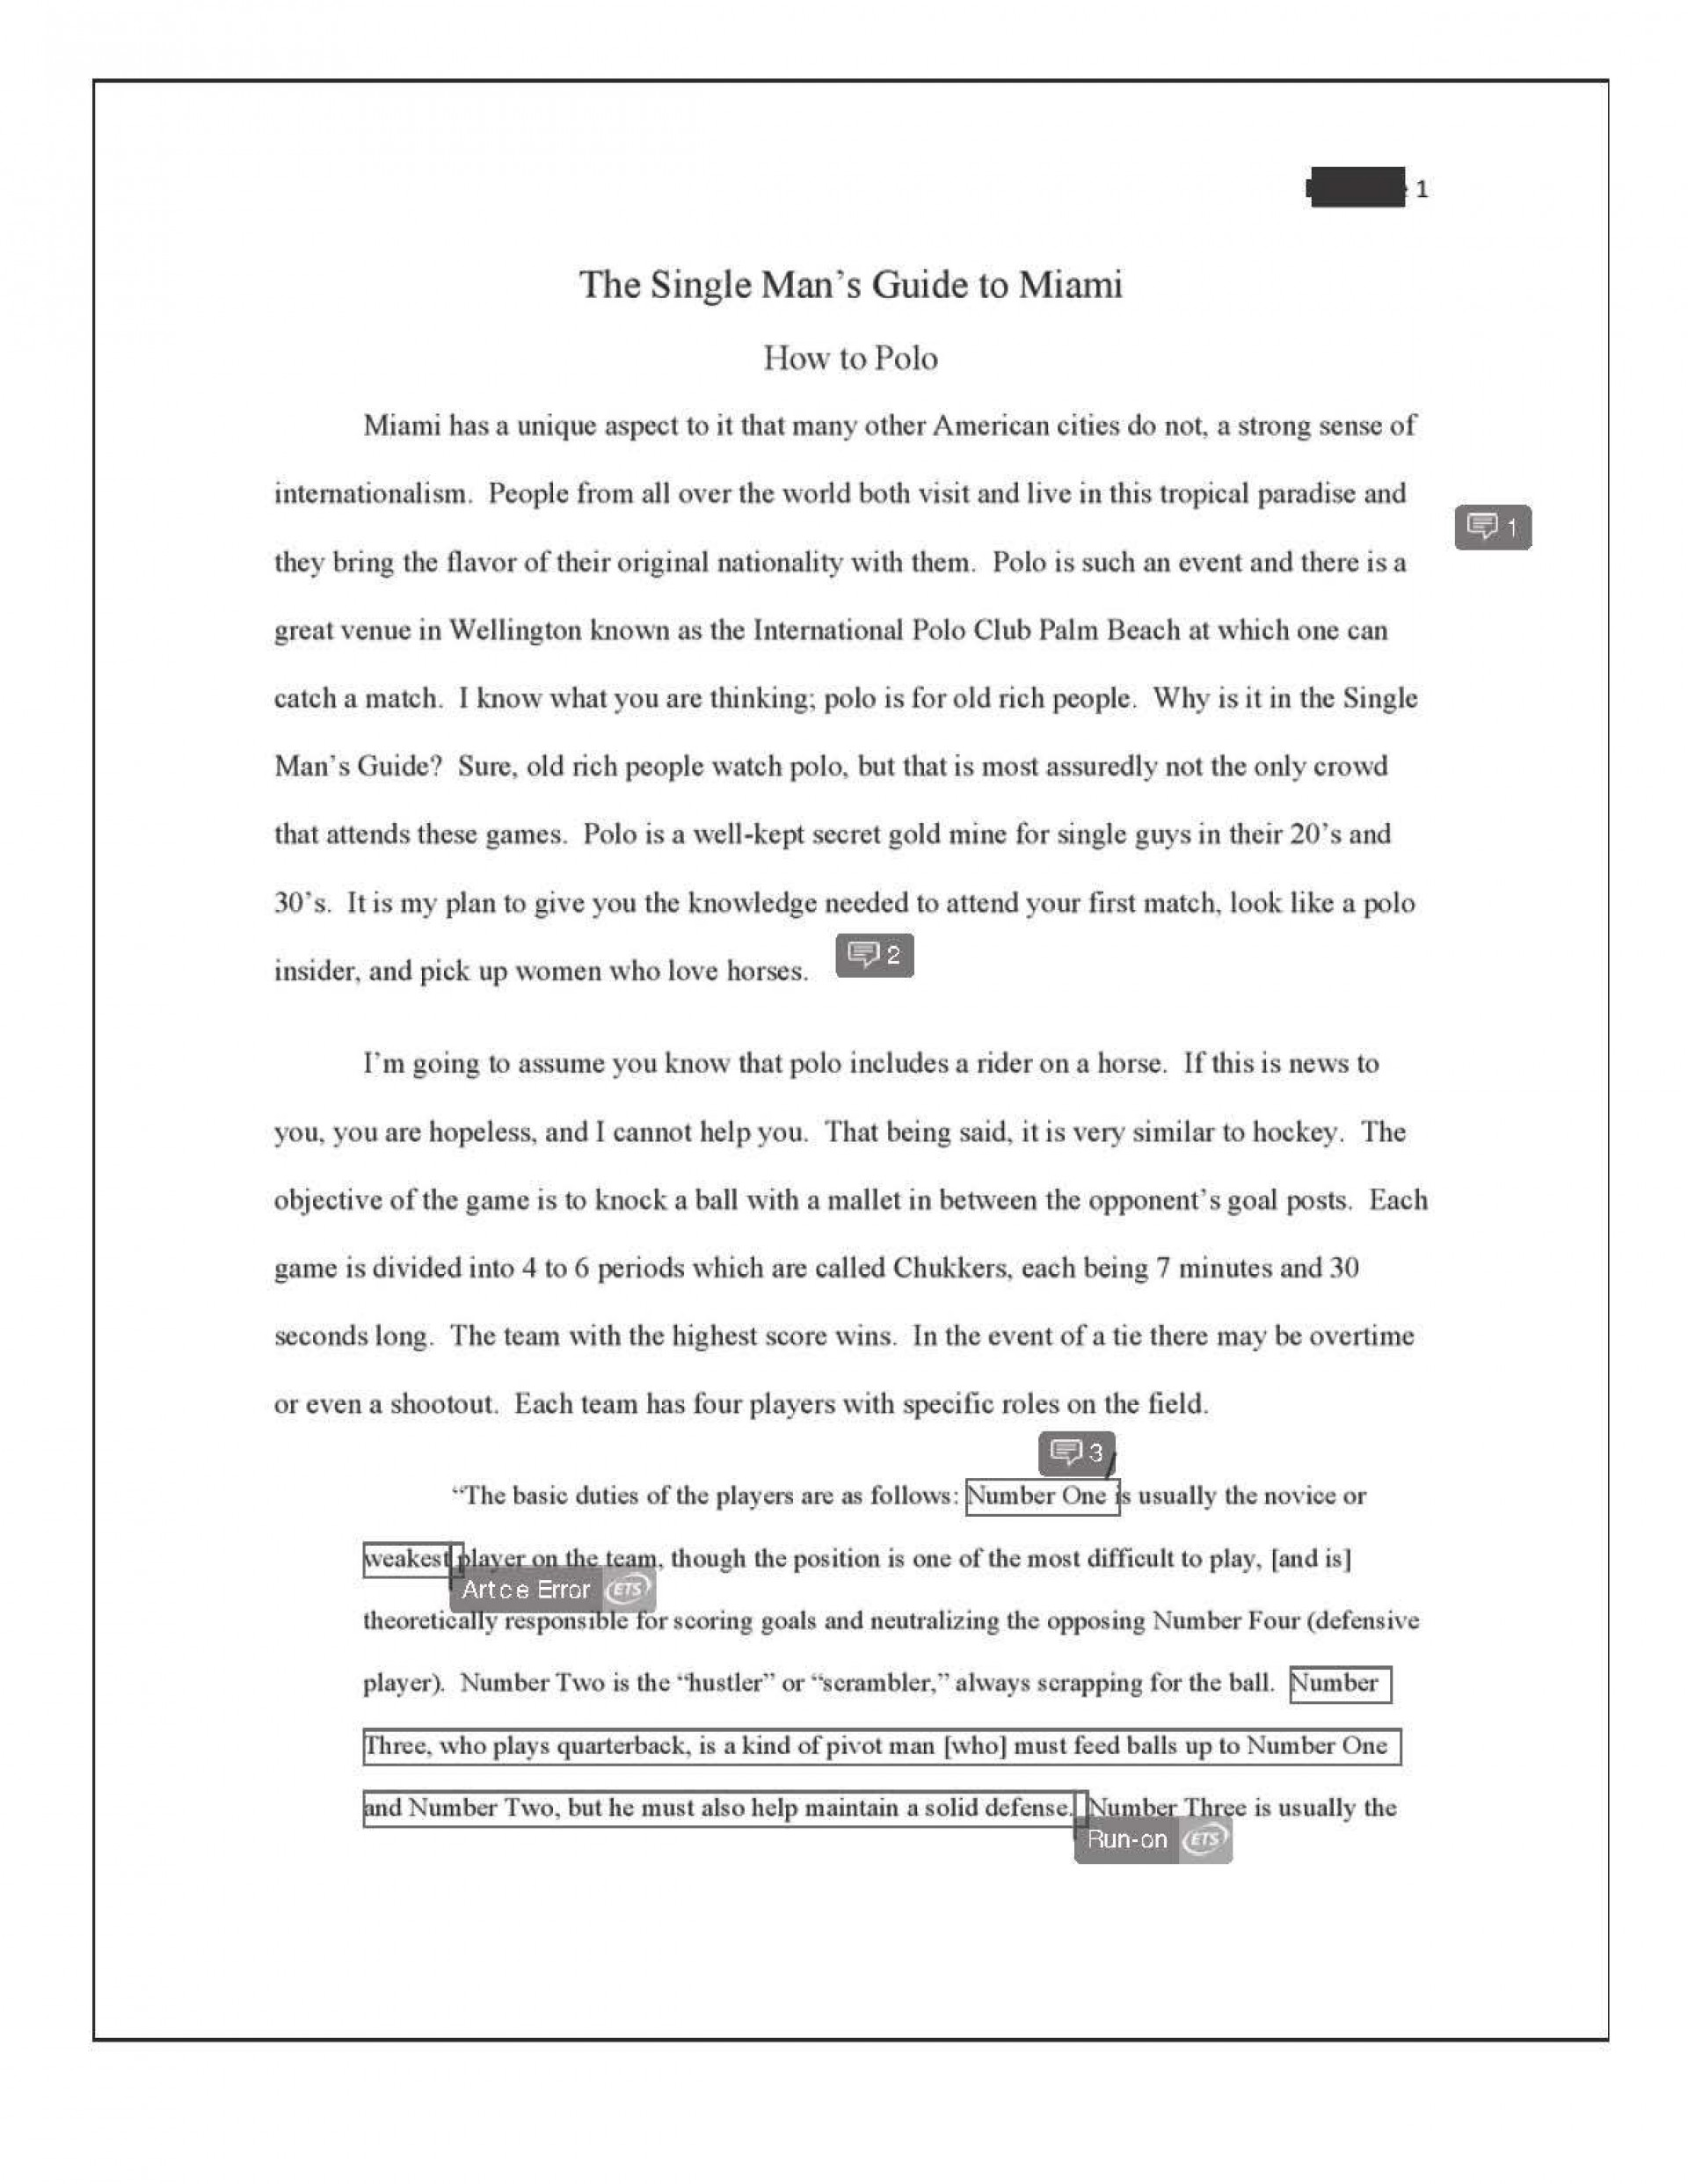 007 Example Of An Essay About Education Examplesative Essays Writing Utopia Instructionative Final How To Polo Redacted P Quiz Prewriting Quizlet Write Incredible Informative Conclusion Ppt 4th Grade 1920